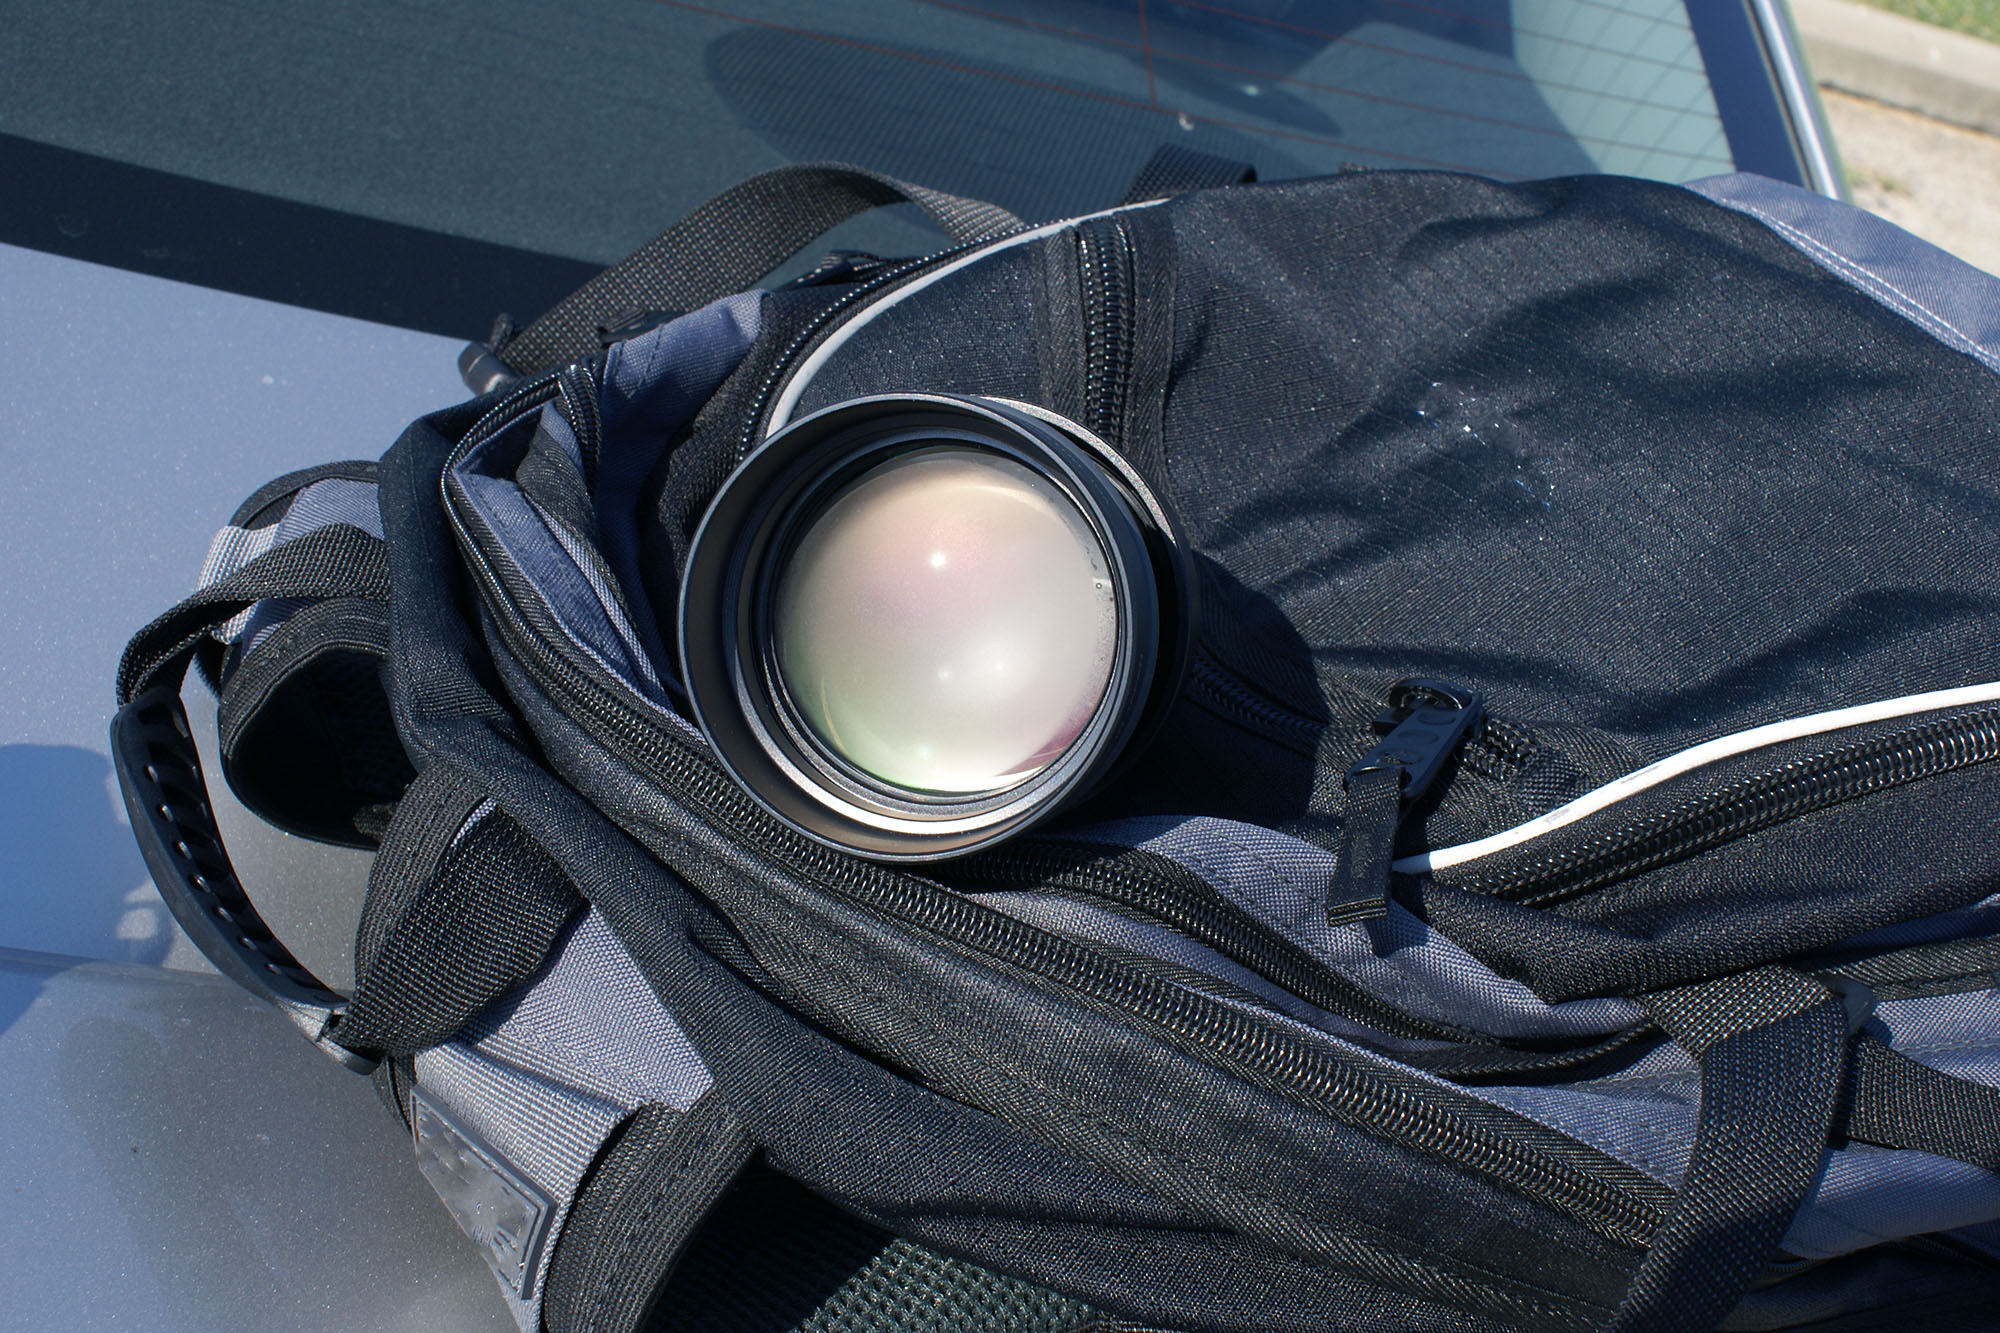 camera condensation lens cold bag